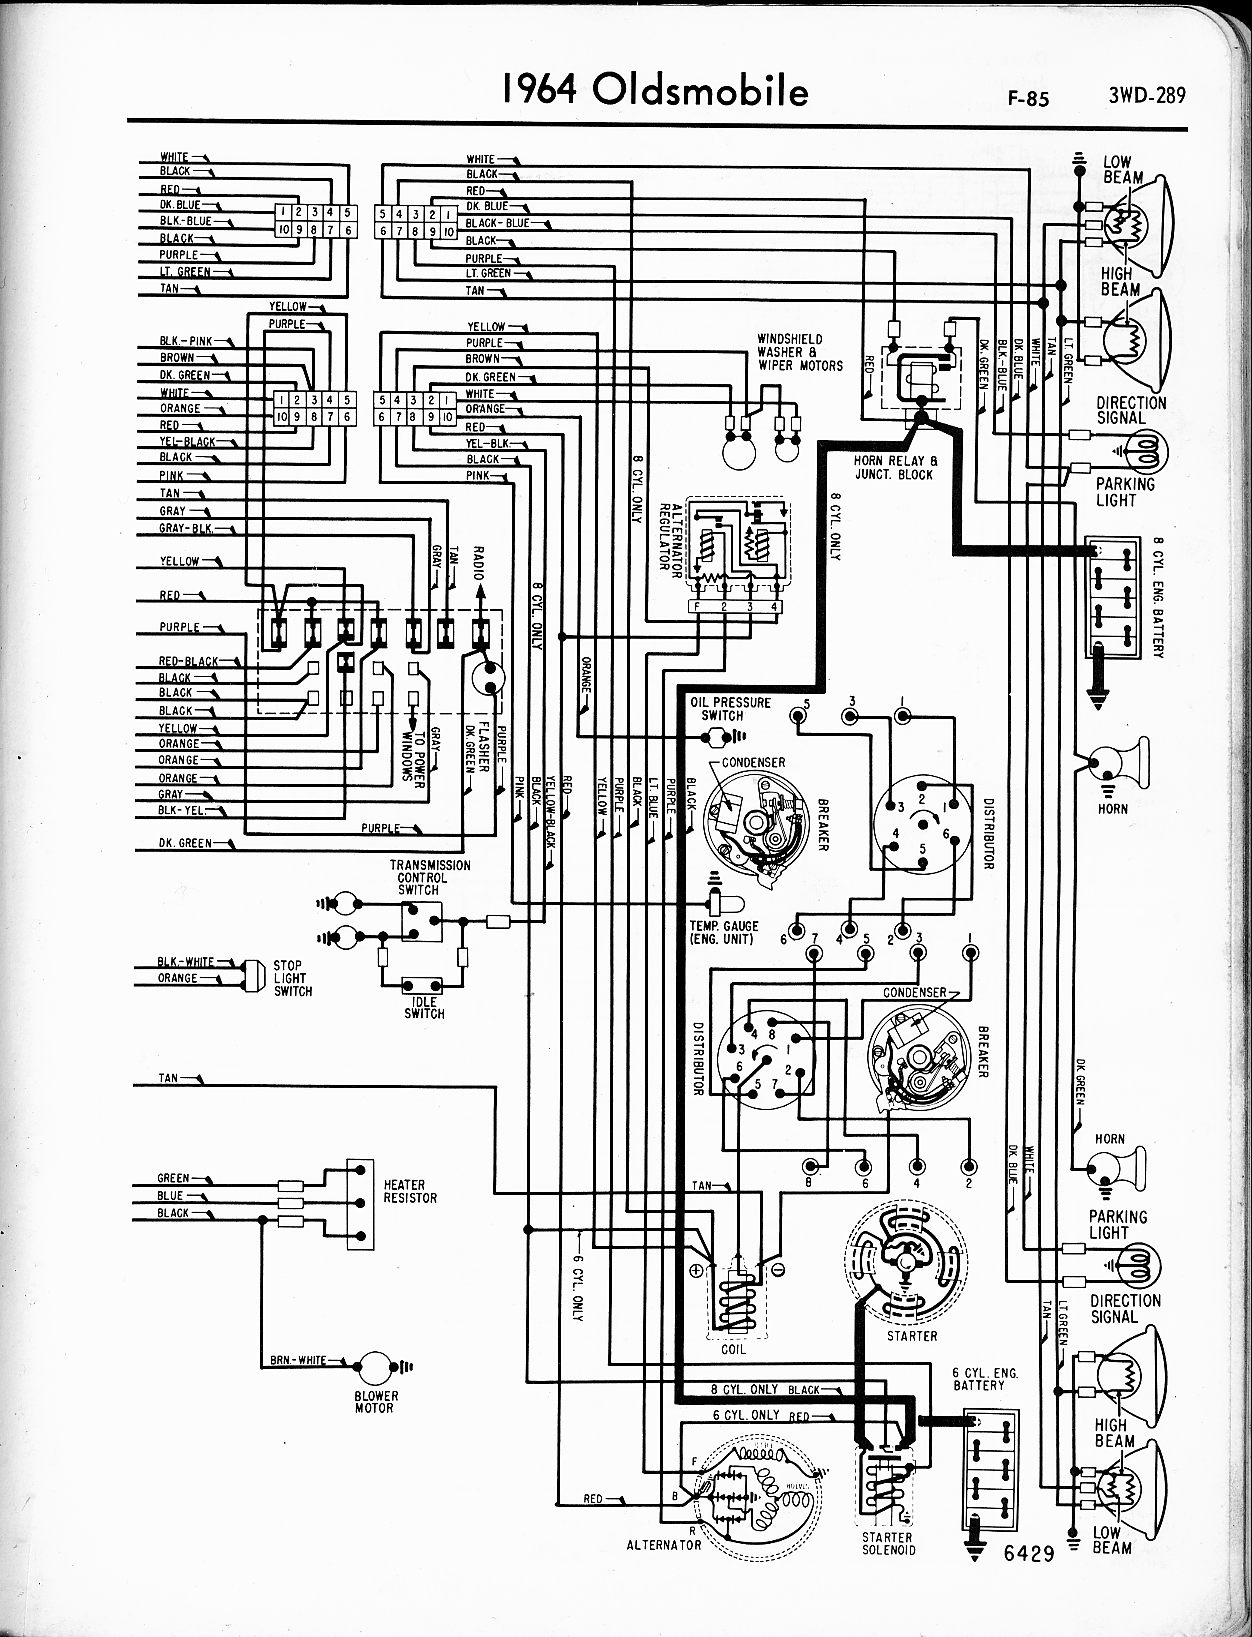 1964 oldsmobile wiring diagram oldsmobile wiring diagrams the old car manual project 1964 f 85 right page